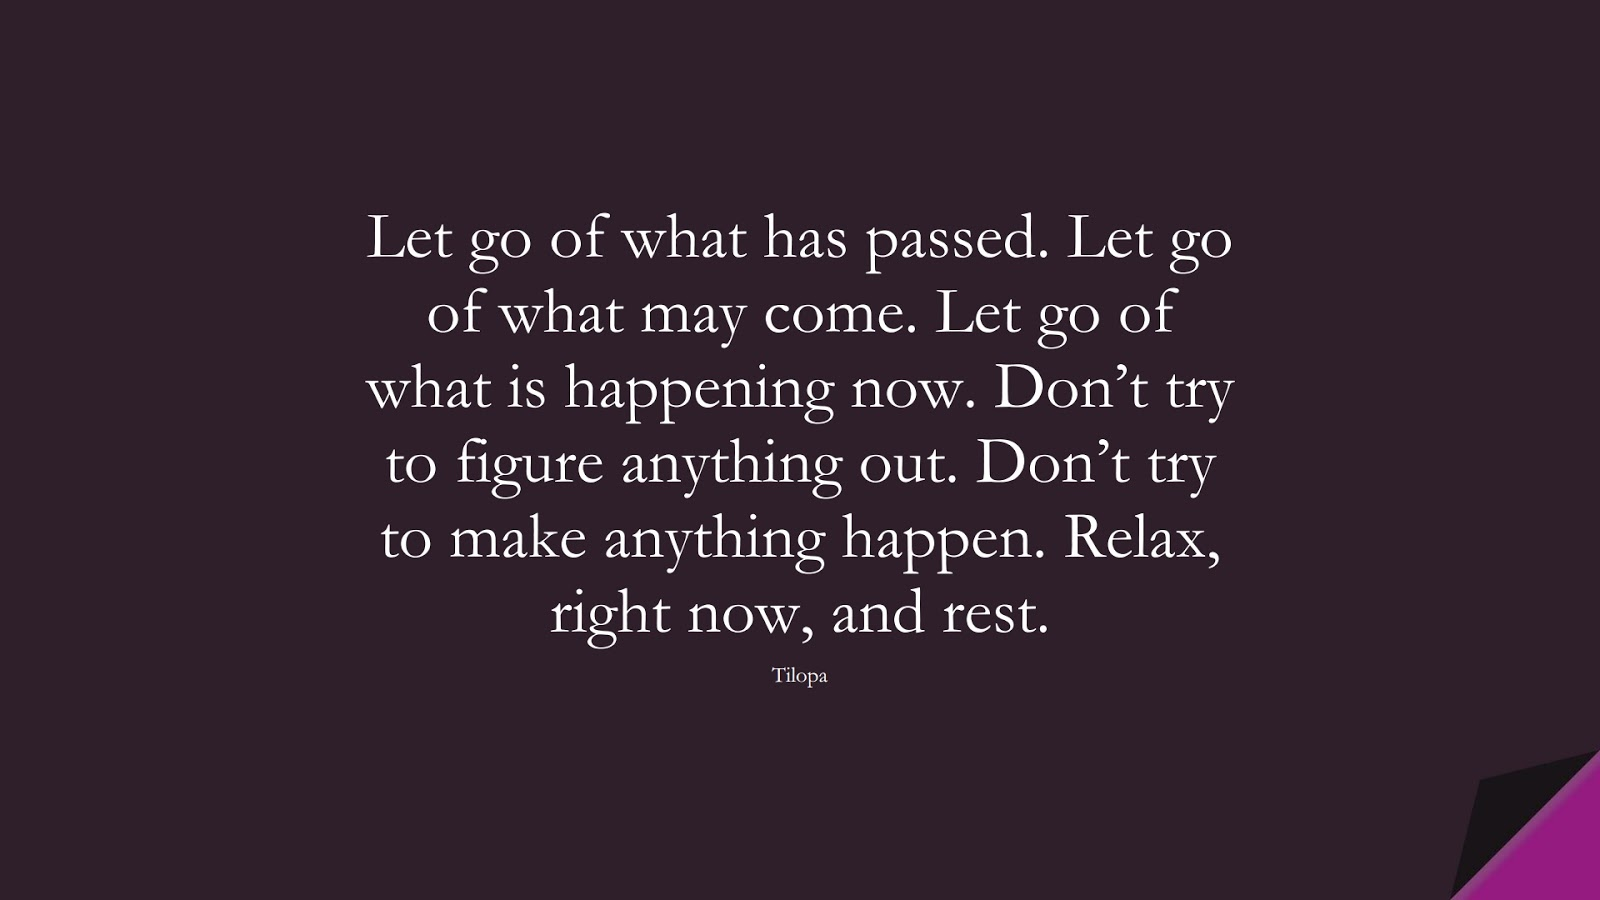 Let go of what has passed. Let go of what may come. Let go of what is happening now. Don't try to figure anything out. Don't try to make anything happen. Relax, right now, and rest. (Tilopa);  #StressQuotes